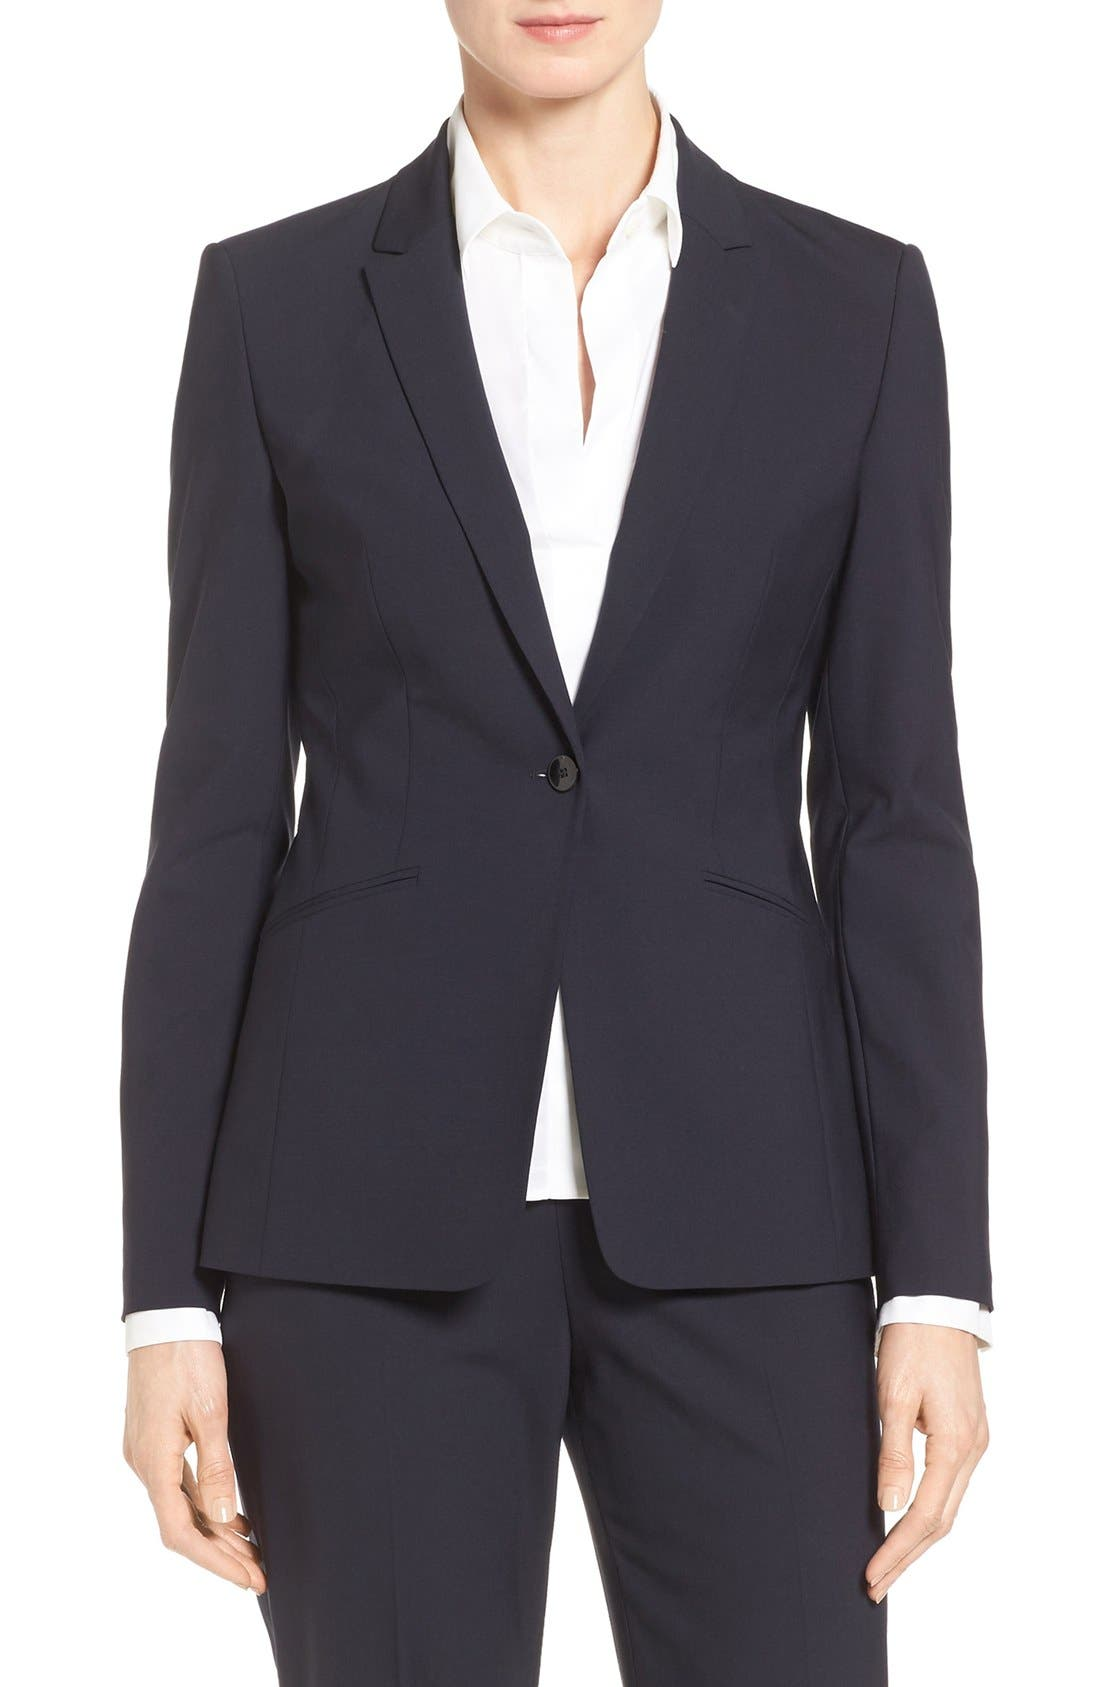 Main Image - BOSS 'Jabina' Stretch Wool Suit Jacket